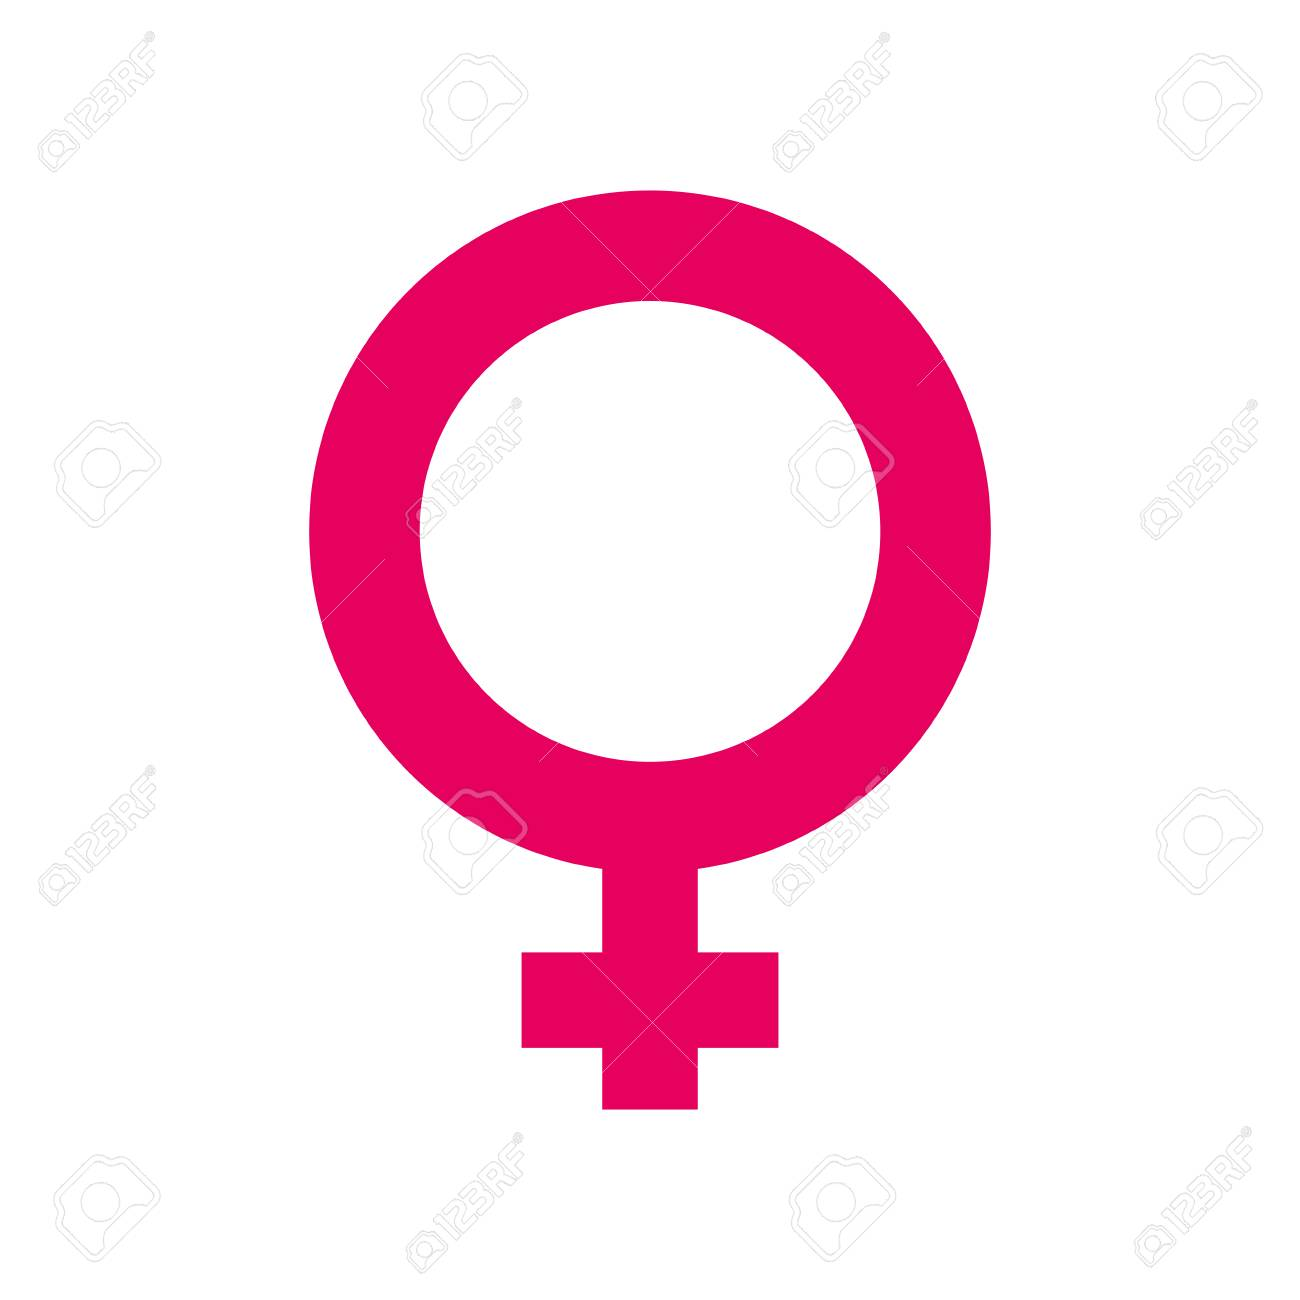 female gender symbol icon vector illustration graphic design royalty free cliparts vectors and stock illustration image 76732680 female gender symbol icon vector illustration graphic design